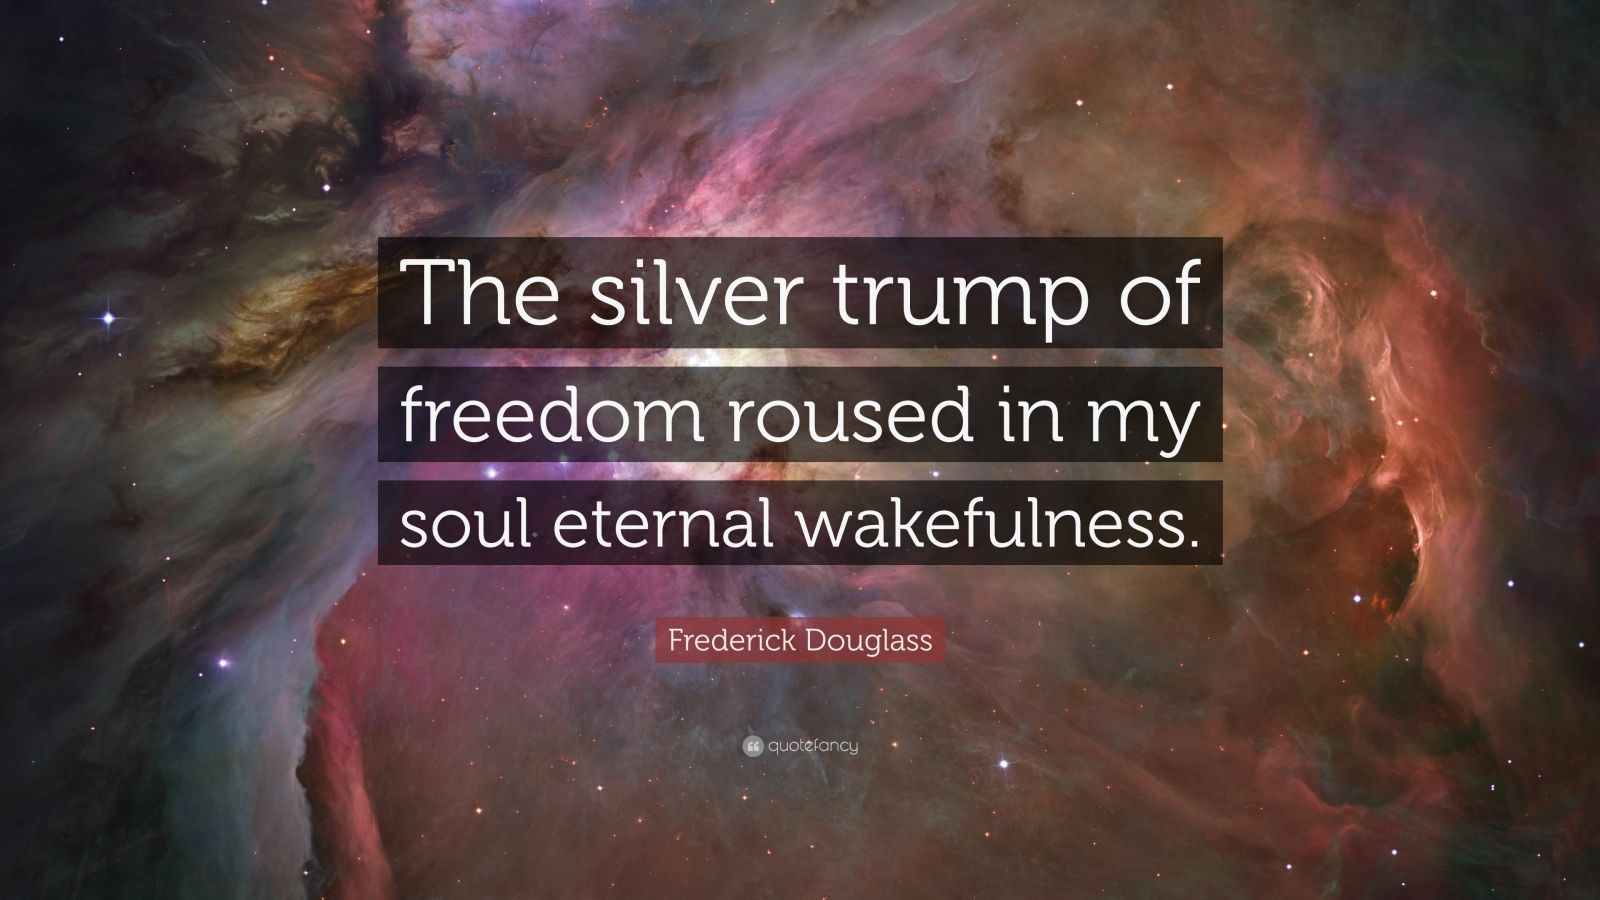 """Frederick Douglass Quote: """"The silver trump of freedom roused in my soul eternal wakefulness."""""""